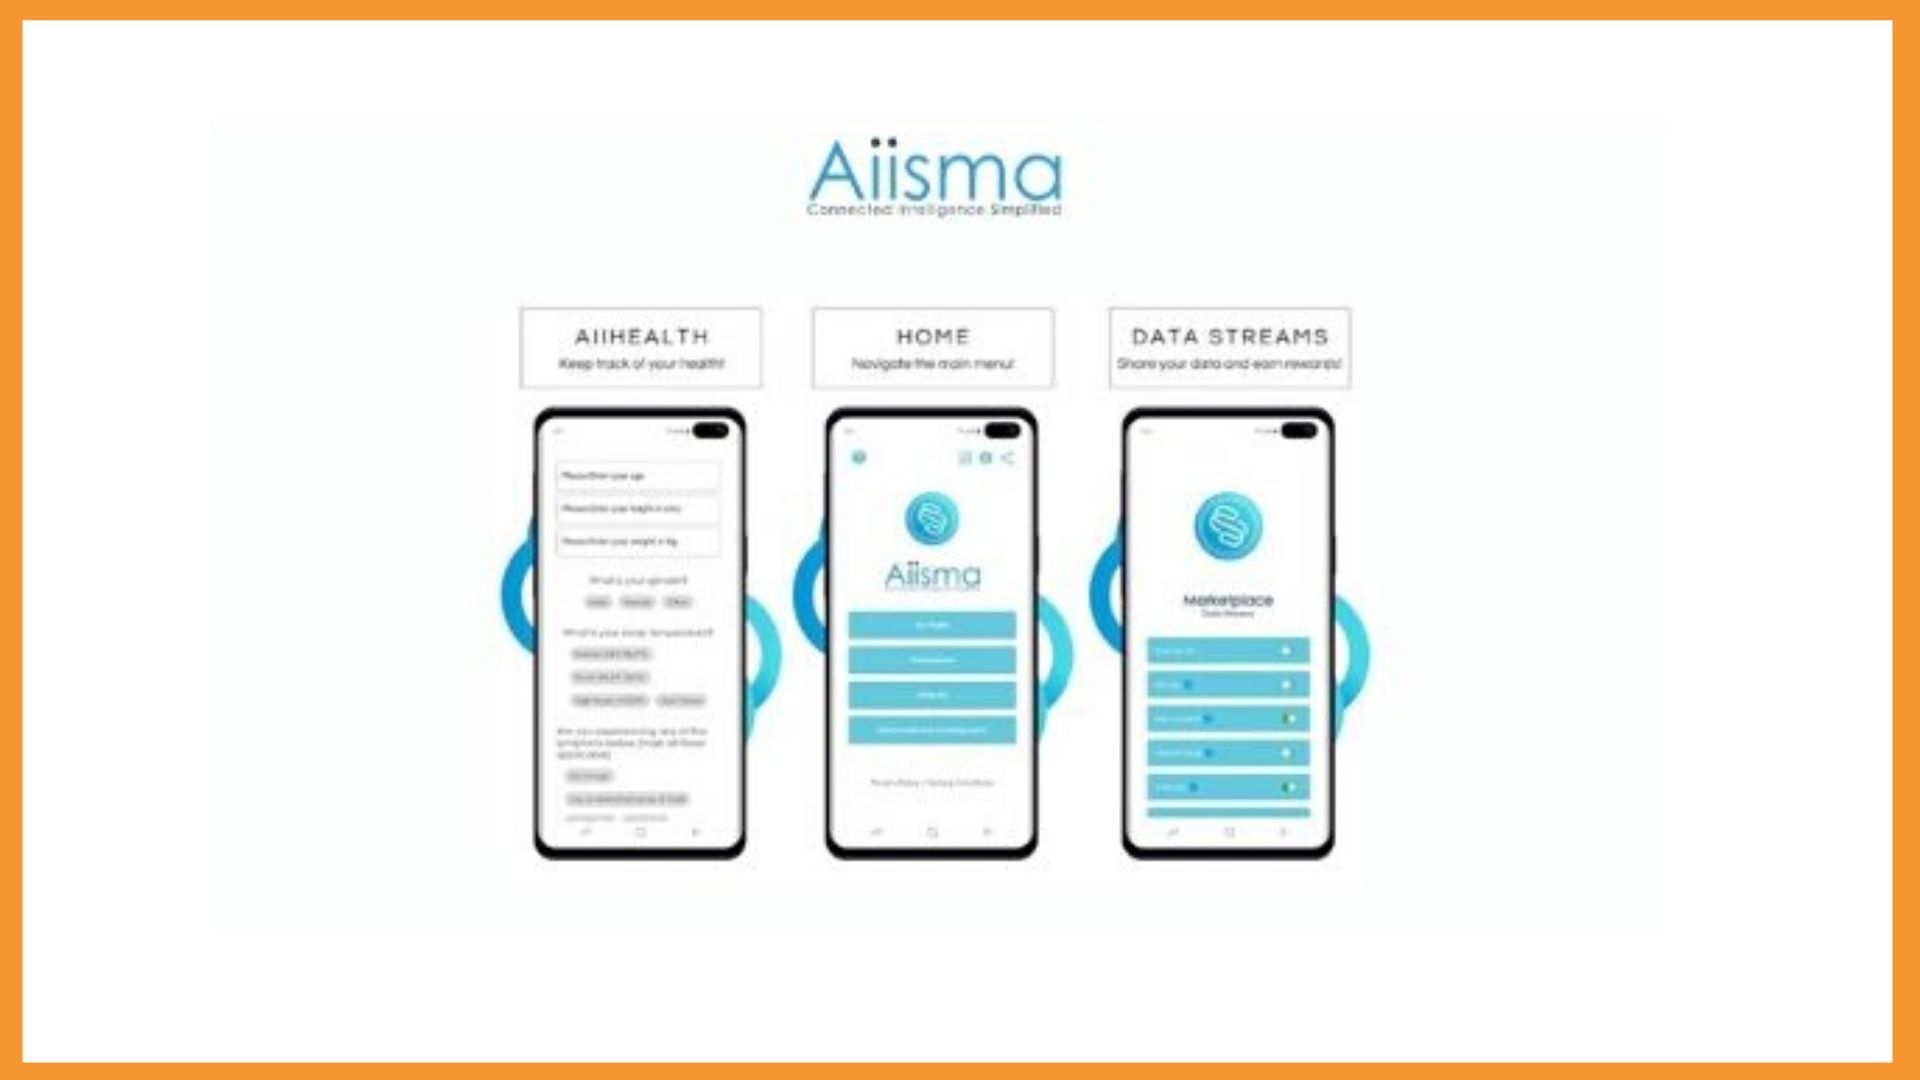 Aiisma available at Playstore and Appstore